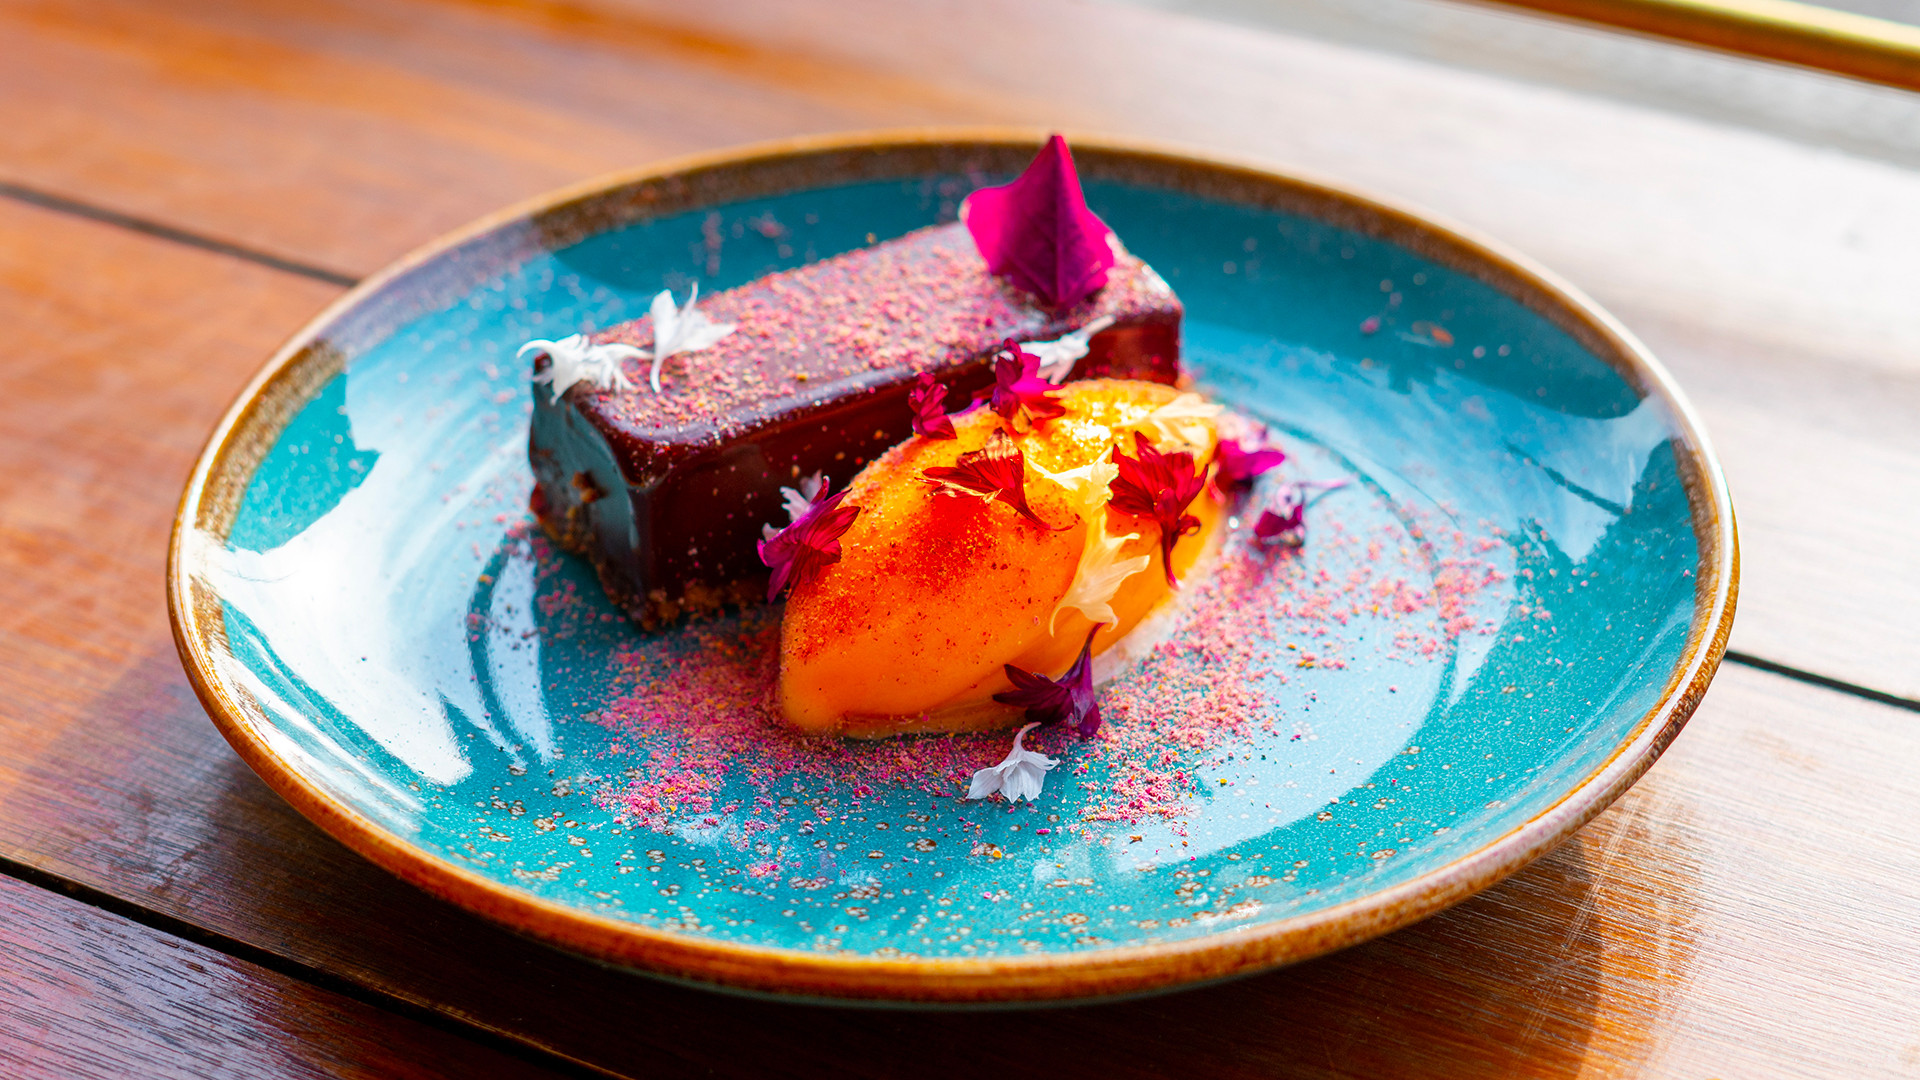 Moio, Clapton: restaurant review – chocolate and lavender tarte with melon and lime sorbet